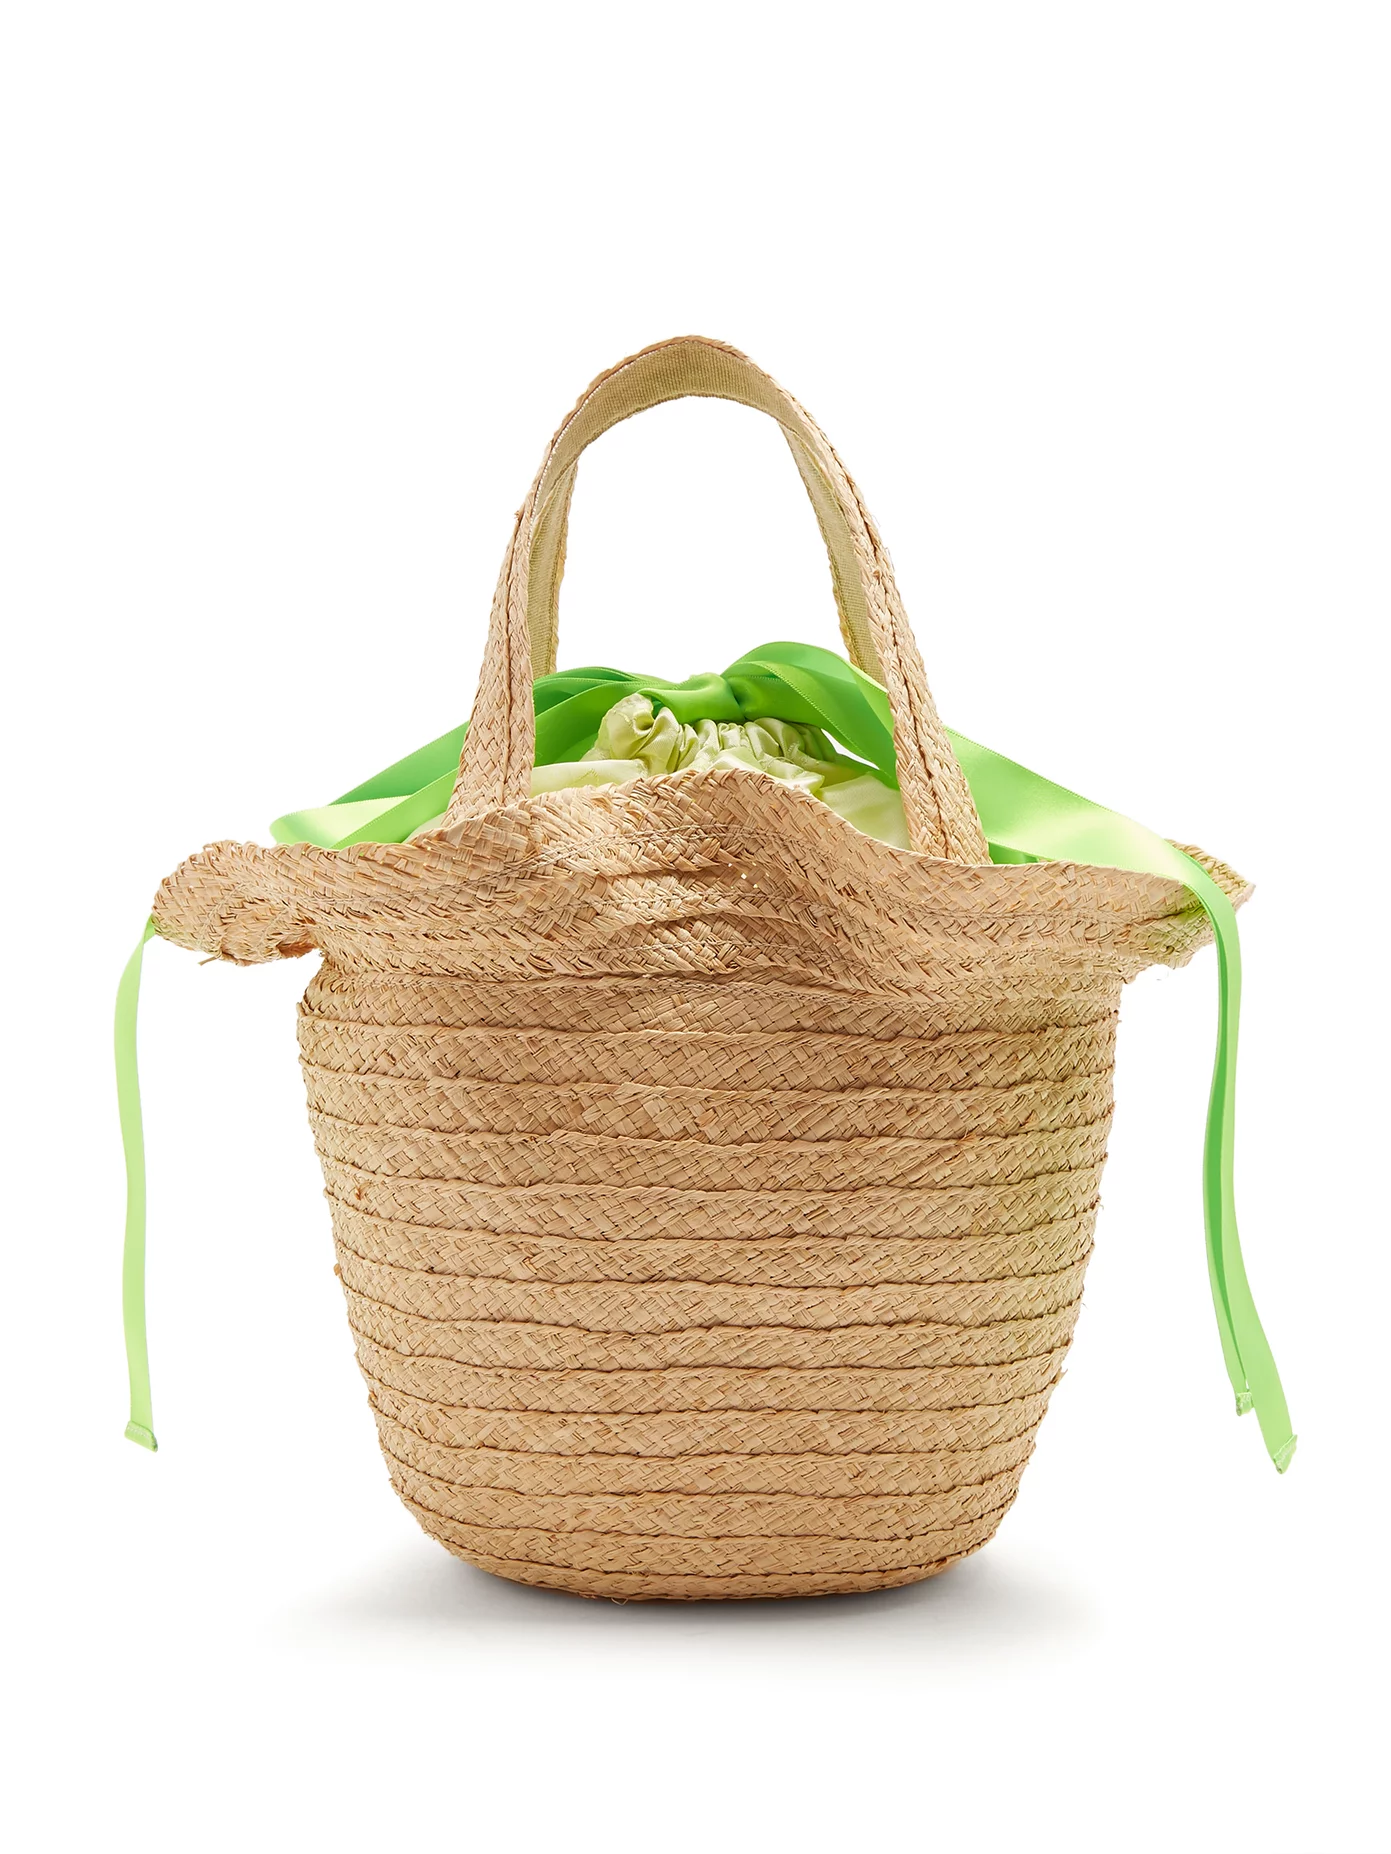 17 Basket Bags We're Very Into RightNow